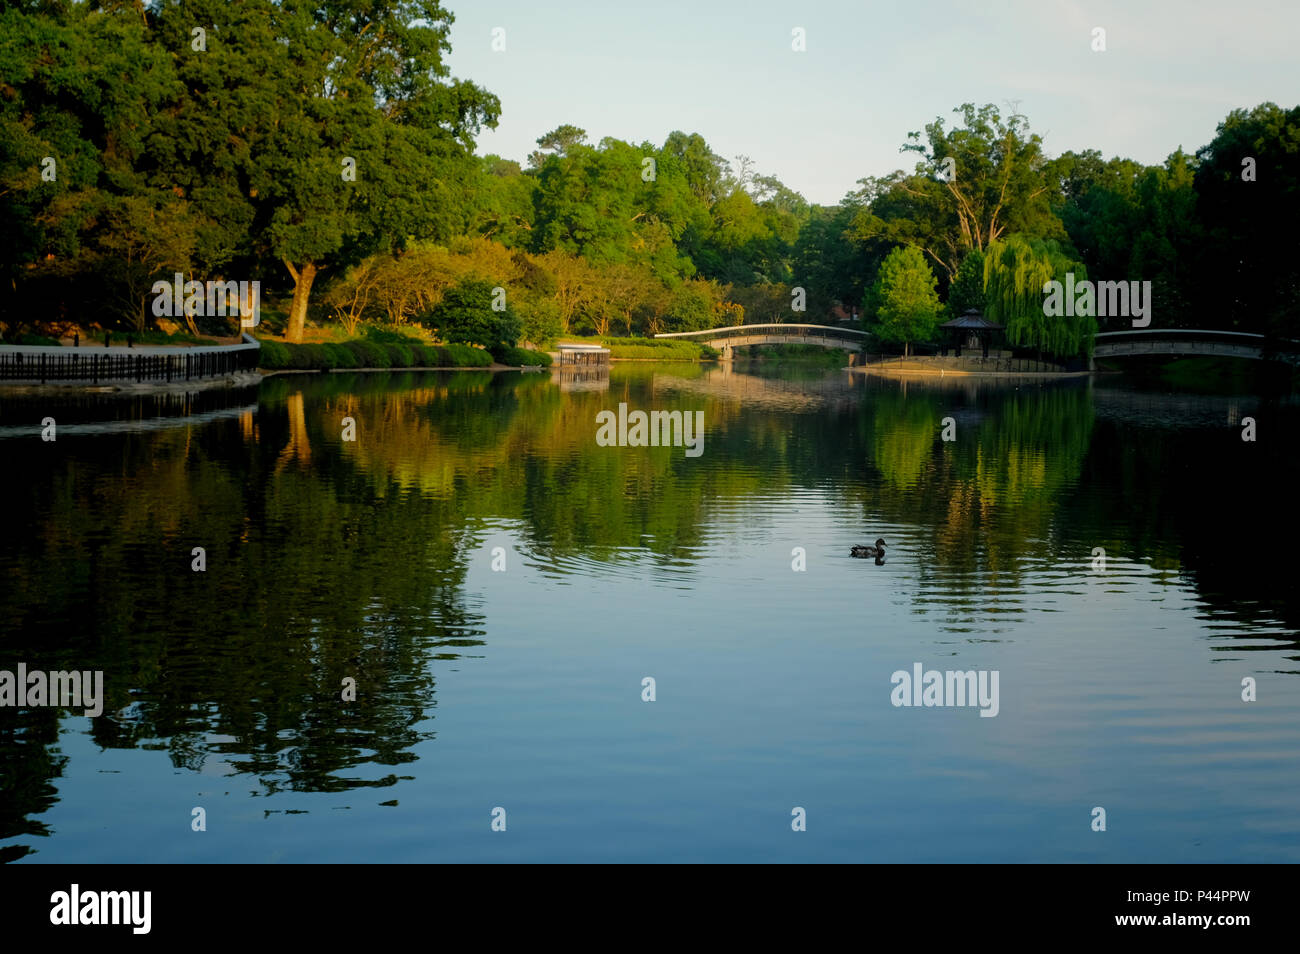 The lake at Pullen Park in downtown Raleigh North Carolina in the early morning sunshine - Stock Image